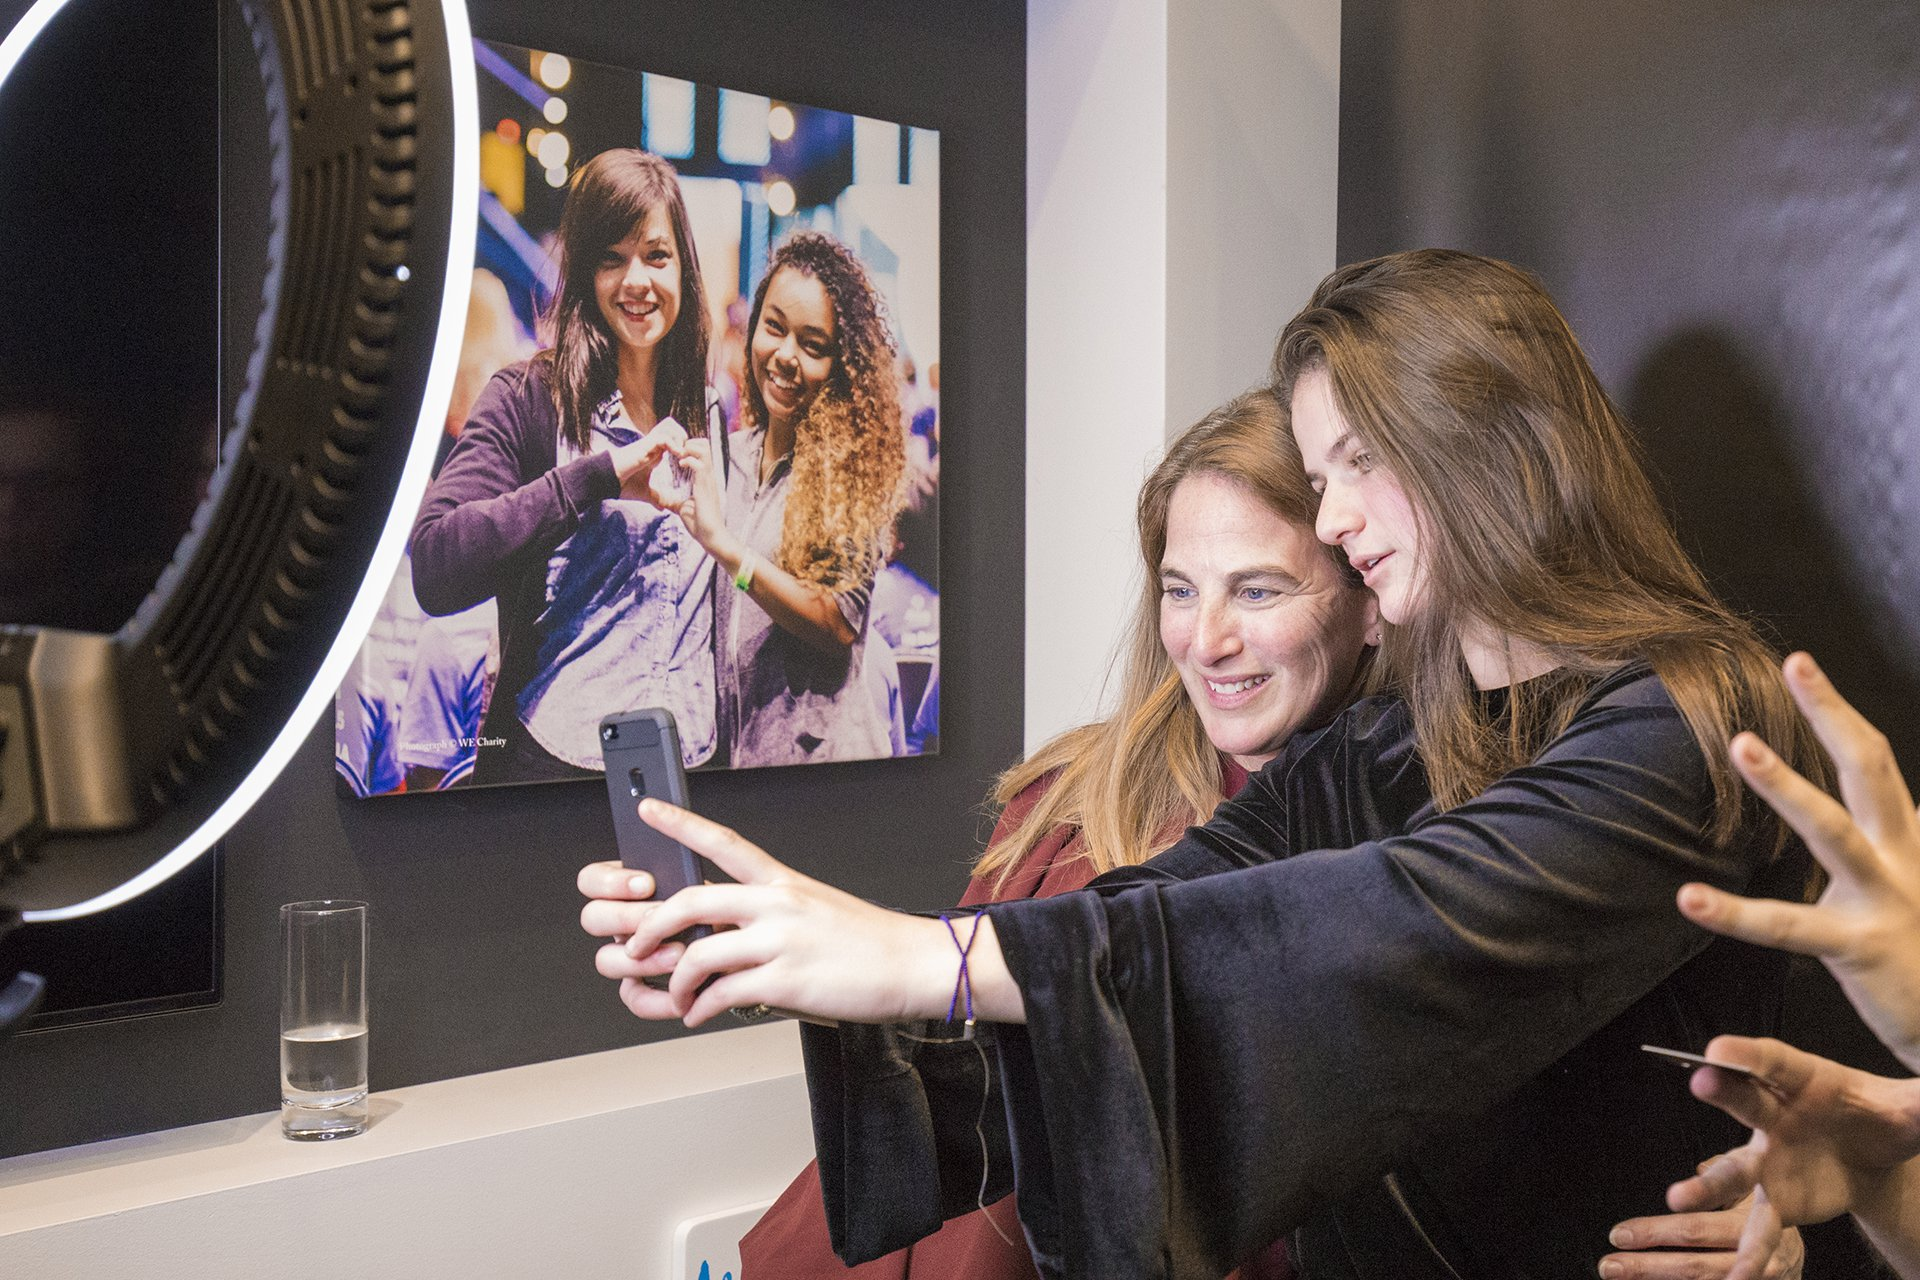 Two people take a selfie at the WE Global Learning Center.